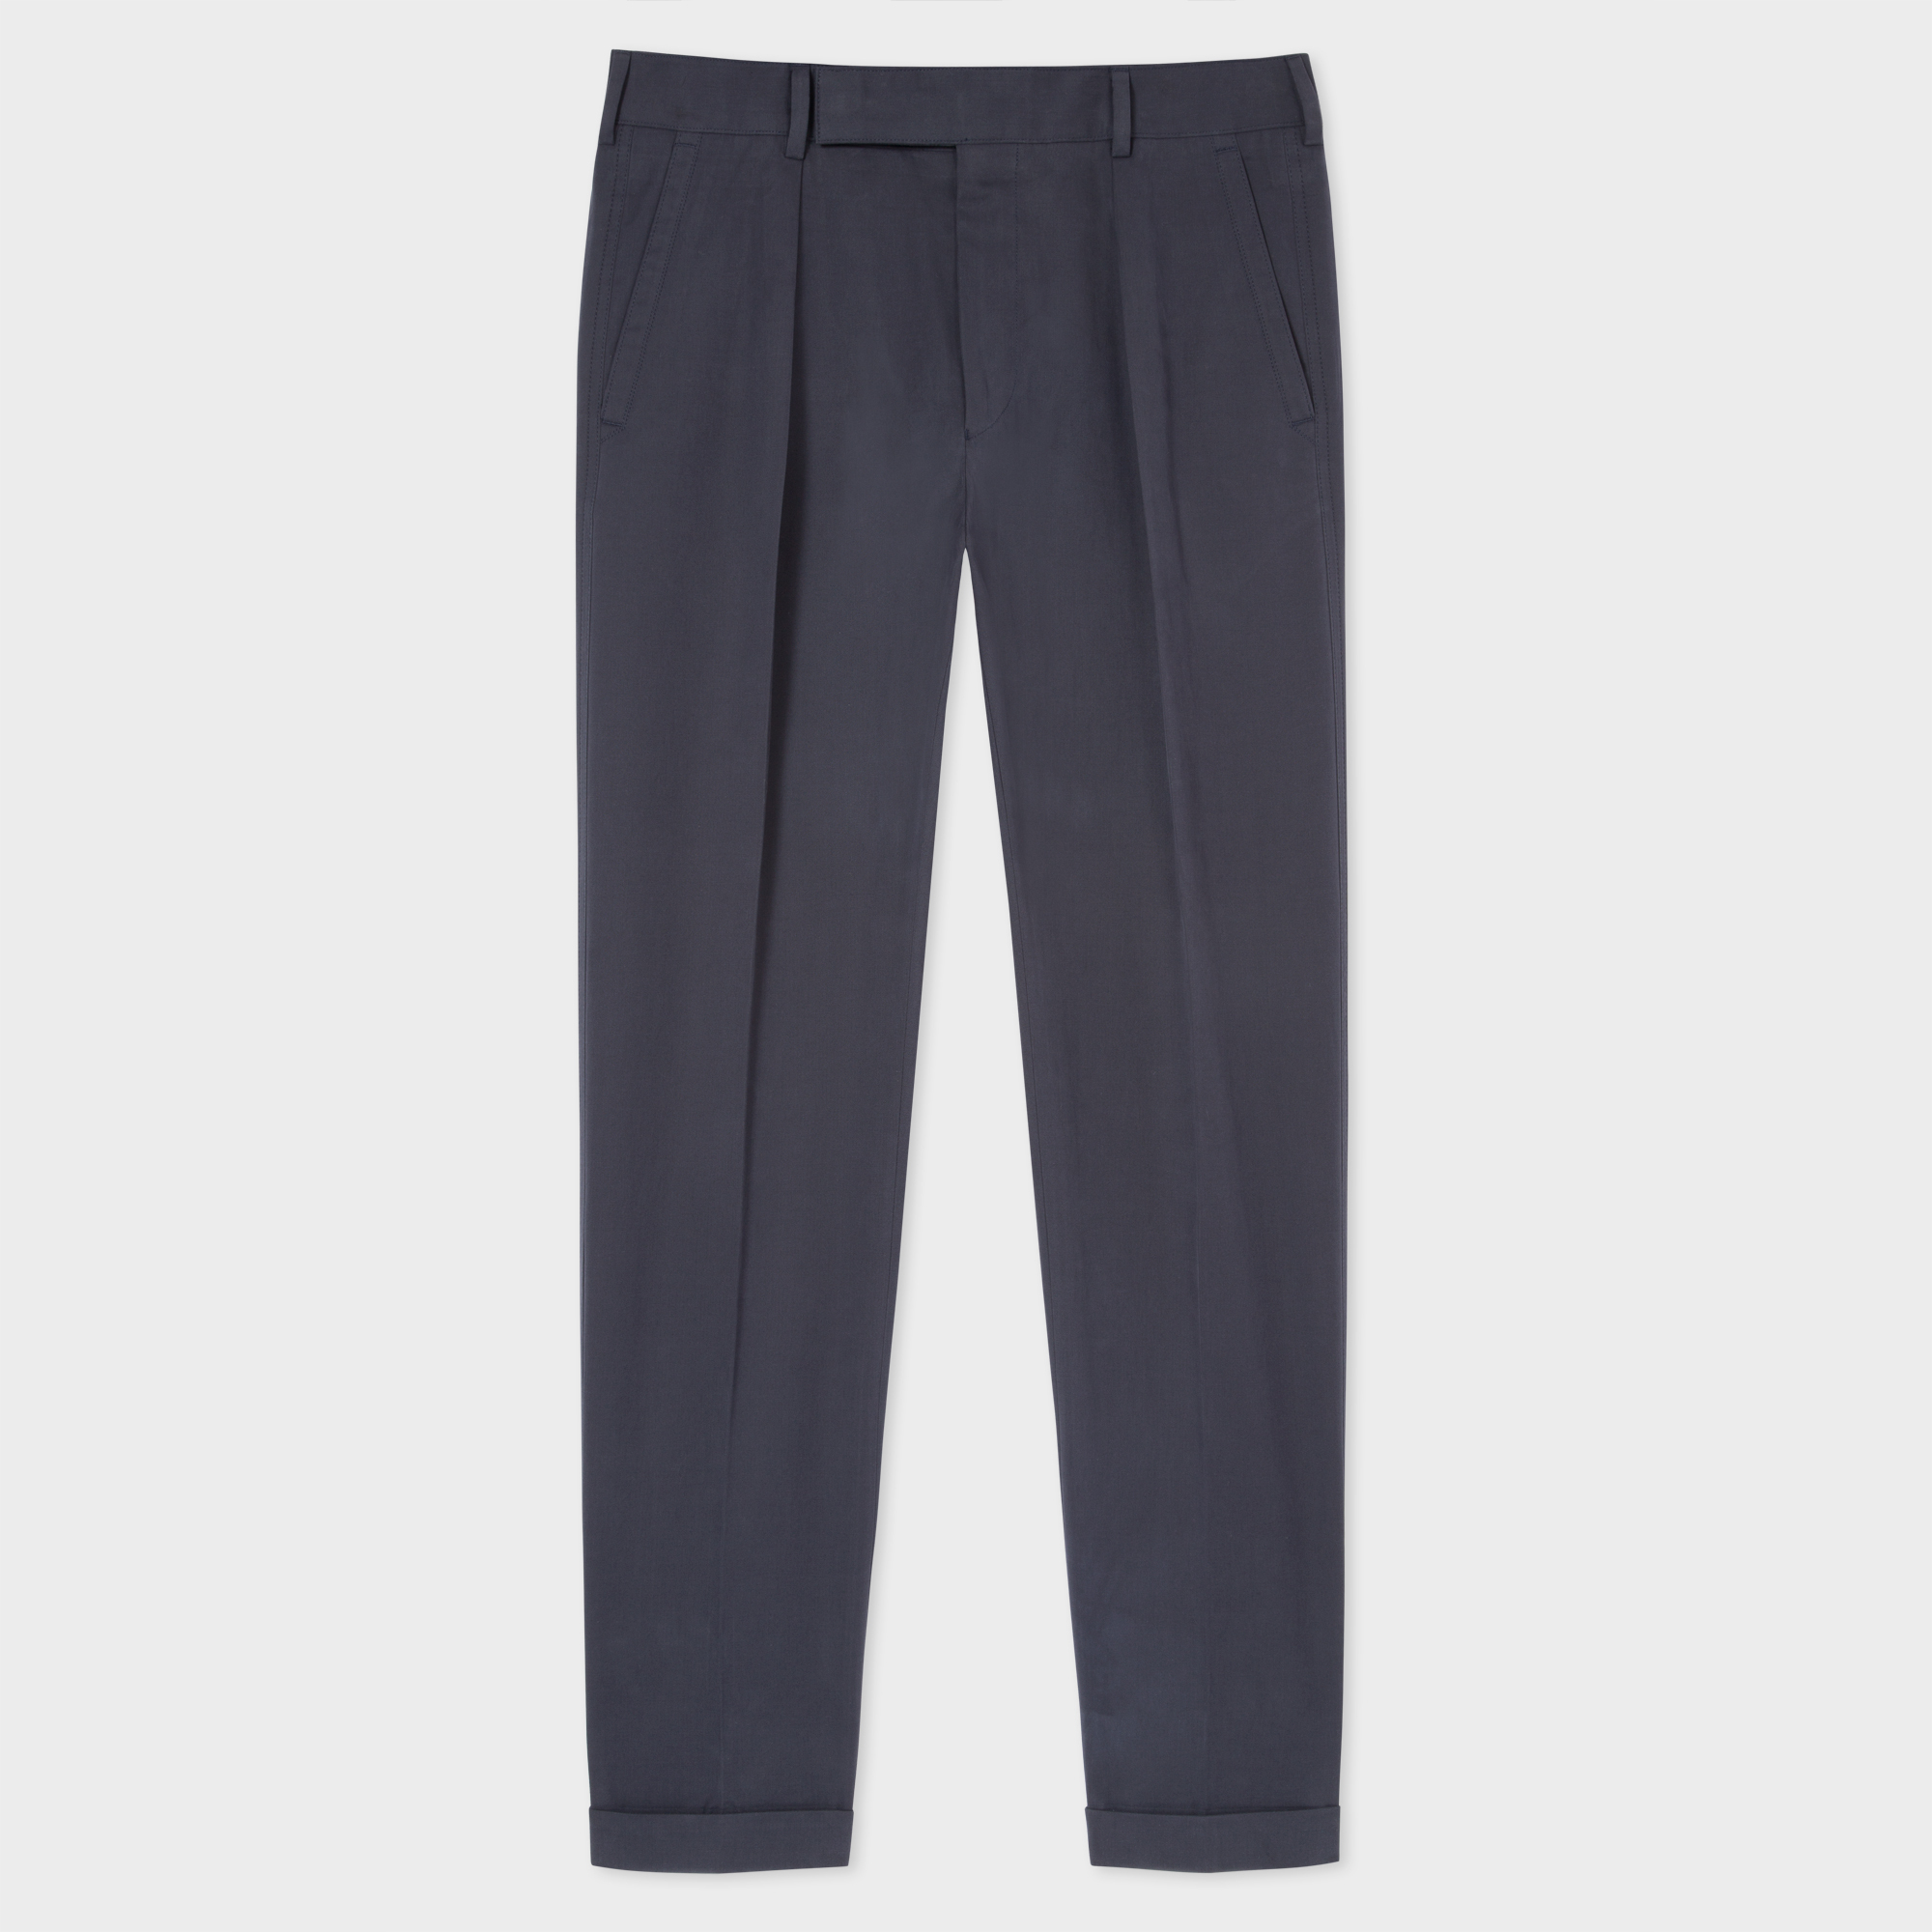 Paul Smith Men's Navy Brushed Cotton Tapered Trousers